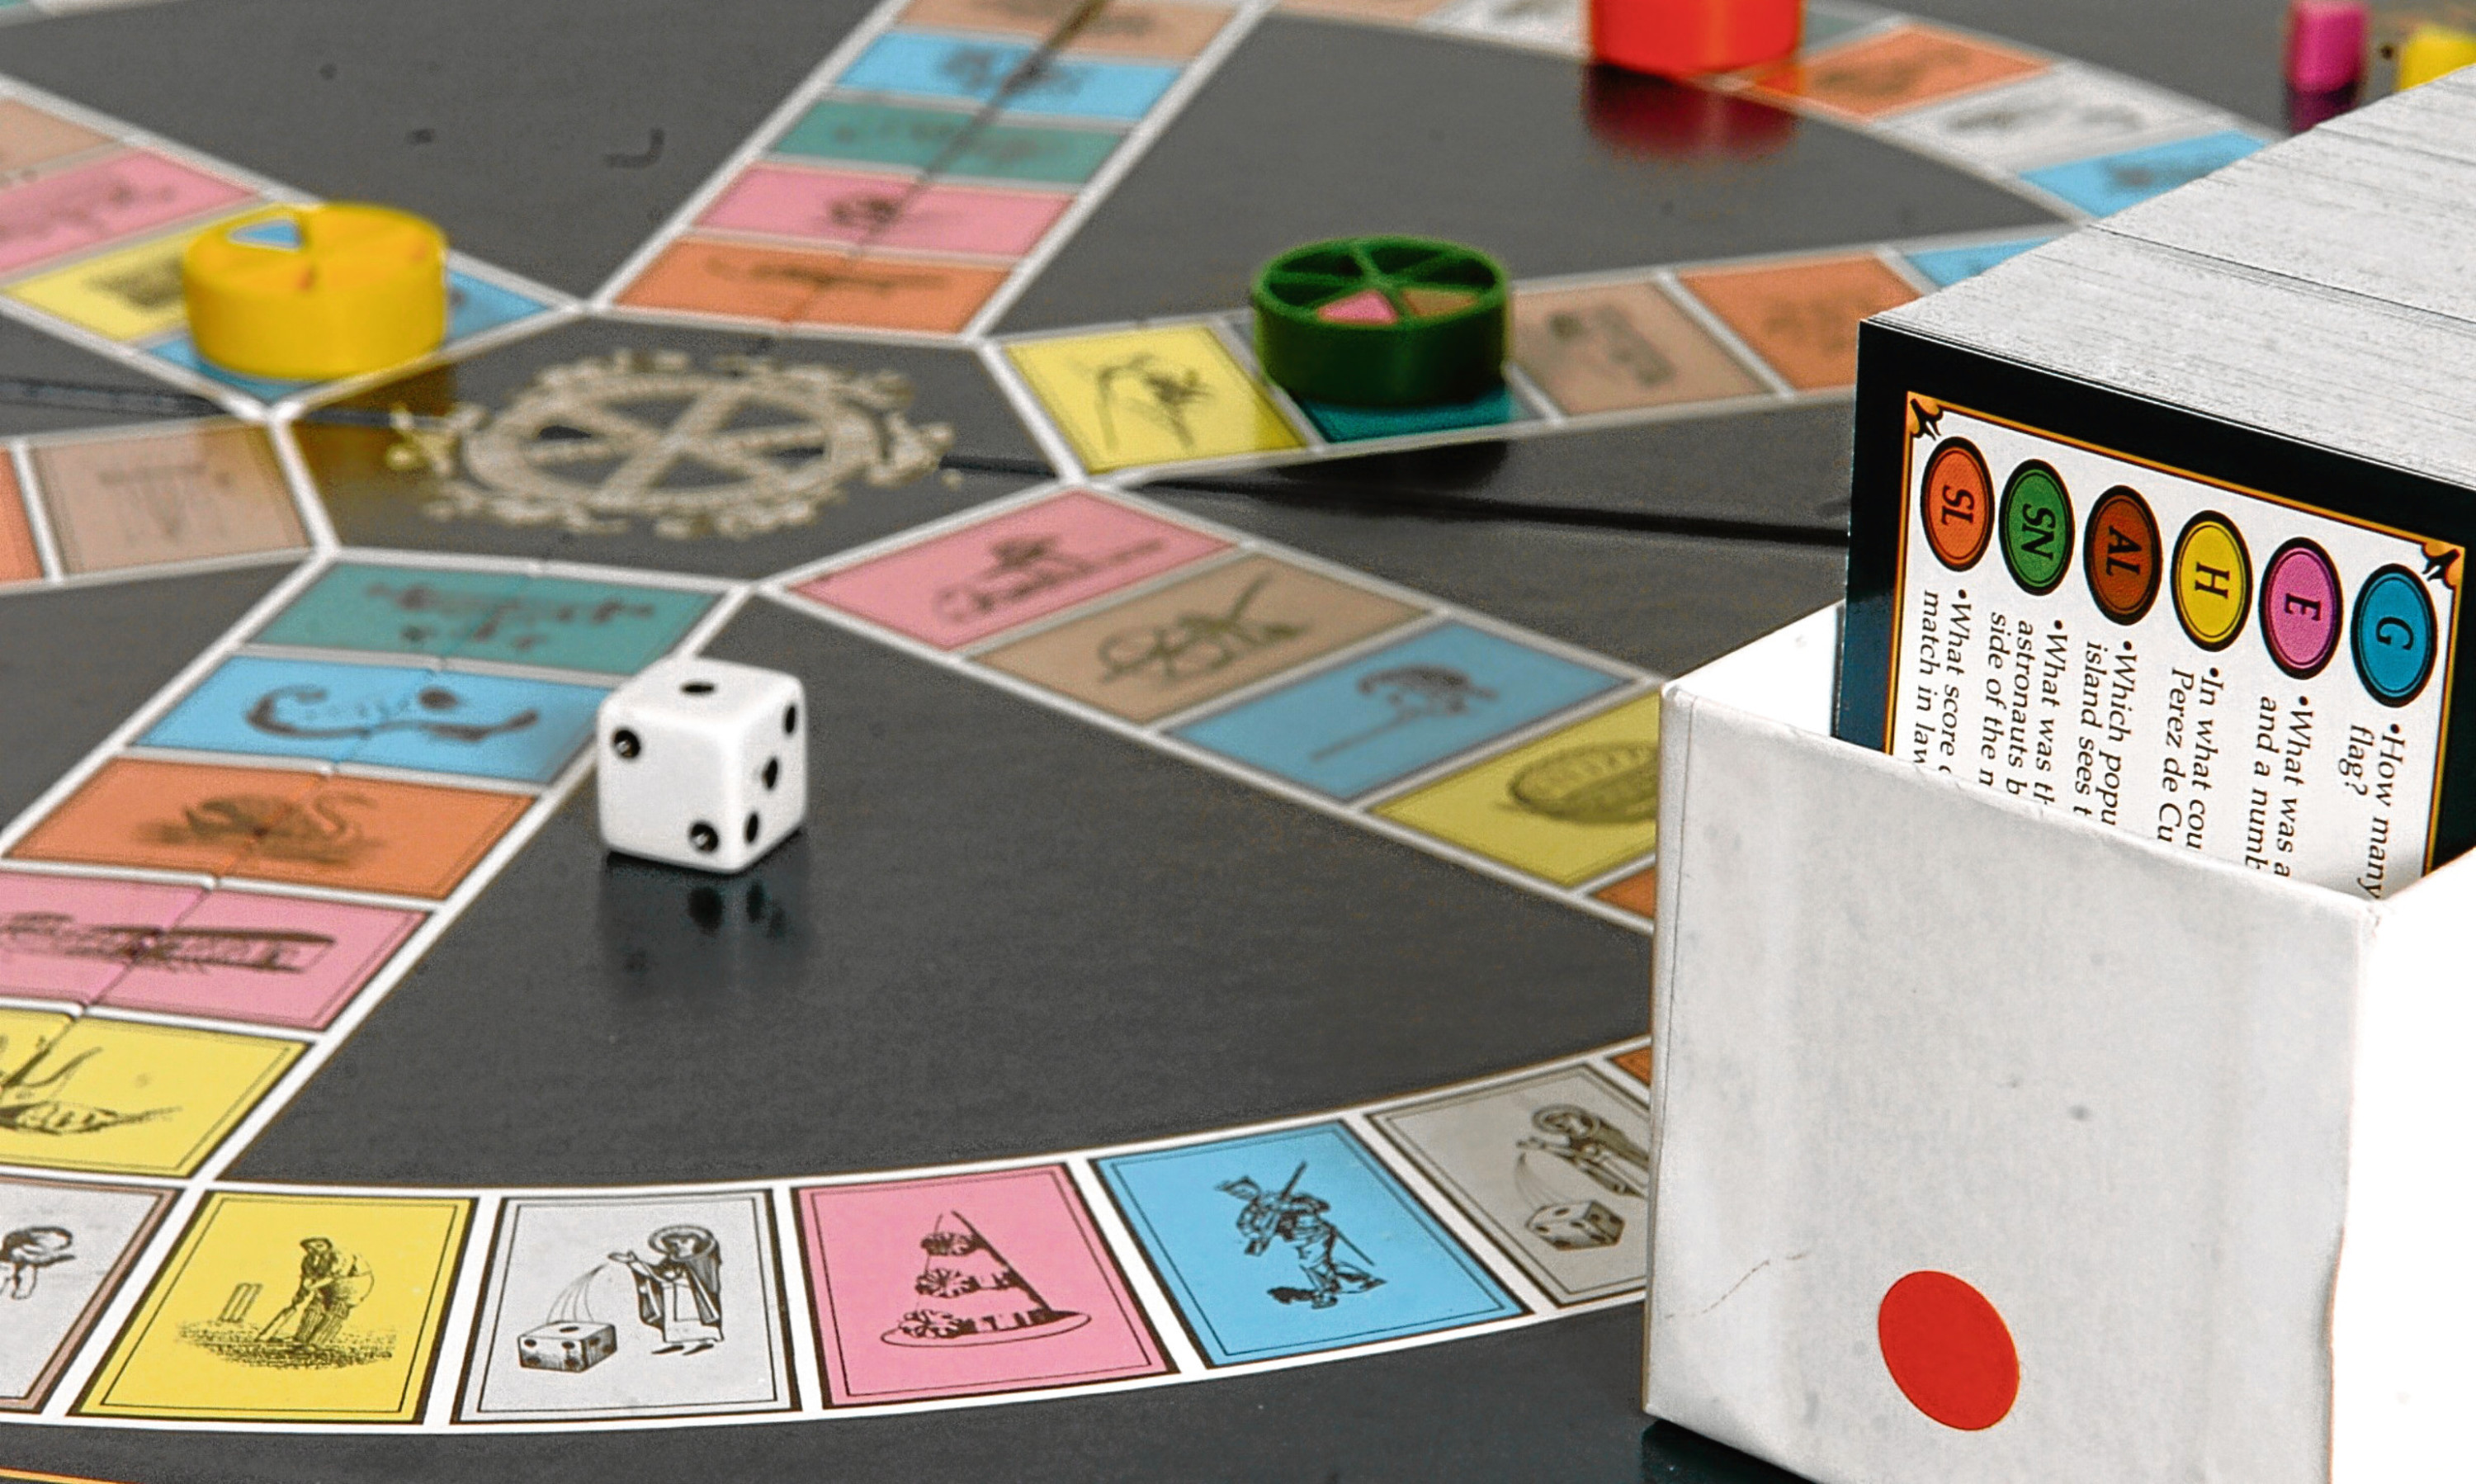 Mike has problems with Trivial Pursuit - such as arguing with the answers.